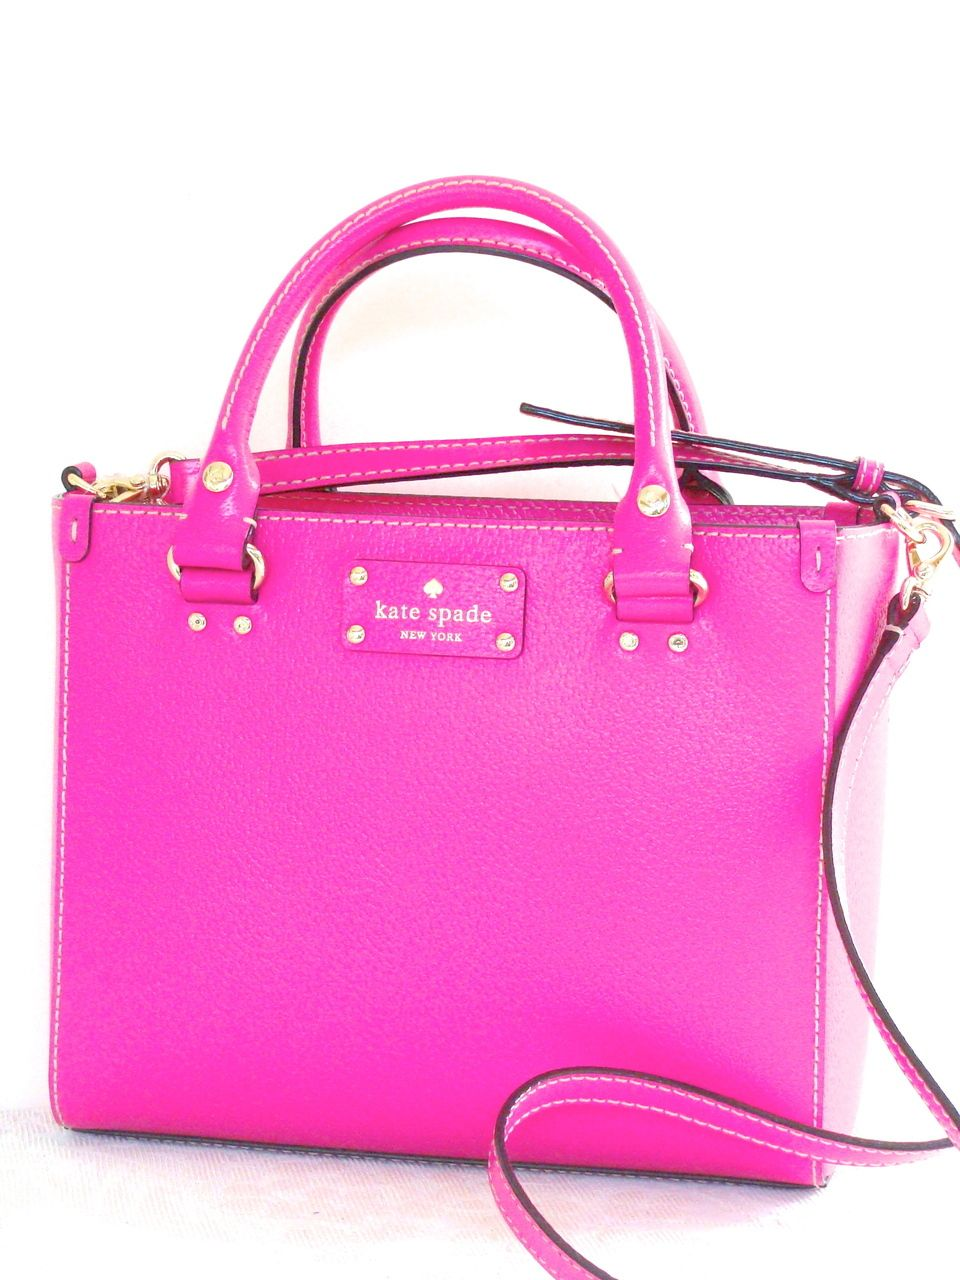 Pin By Janet Dees On Handbags Pinterest Kate Spade Wellesley Leather Totes And Tote Bag